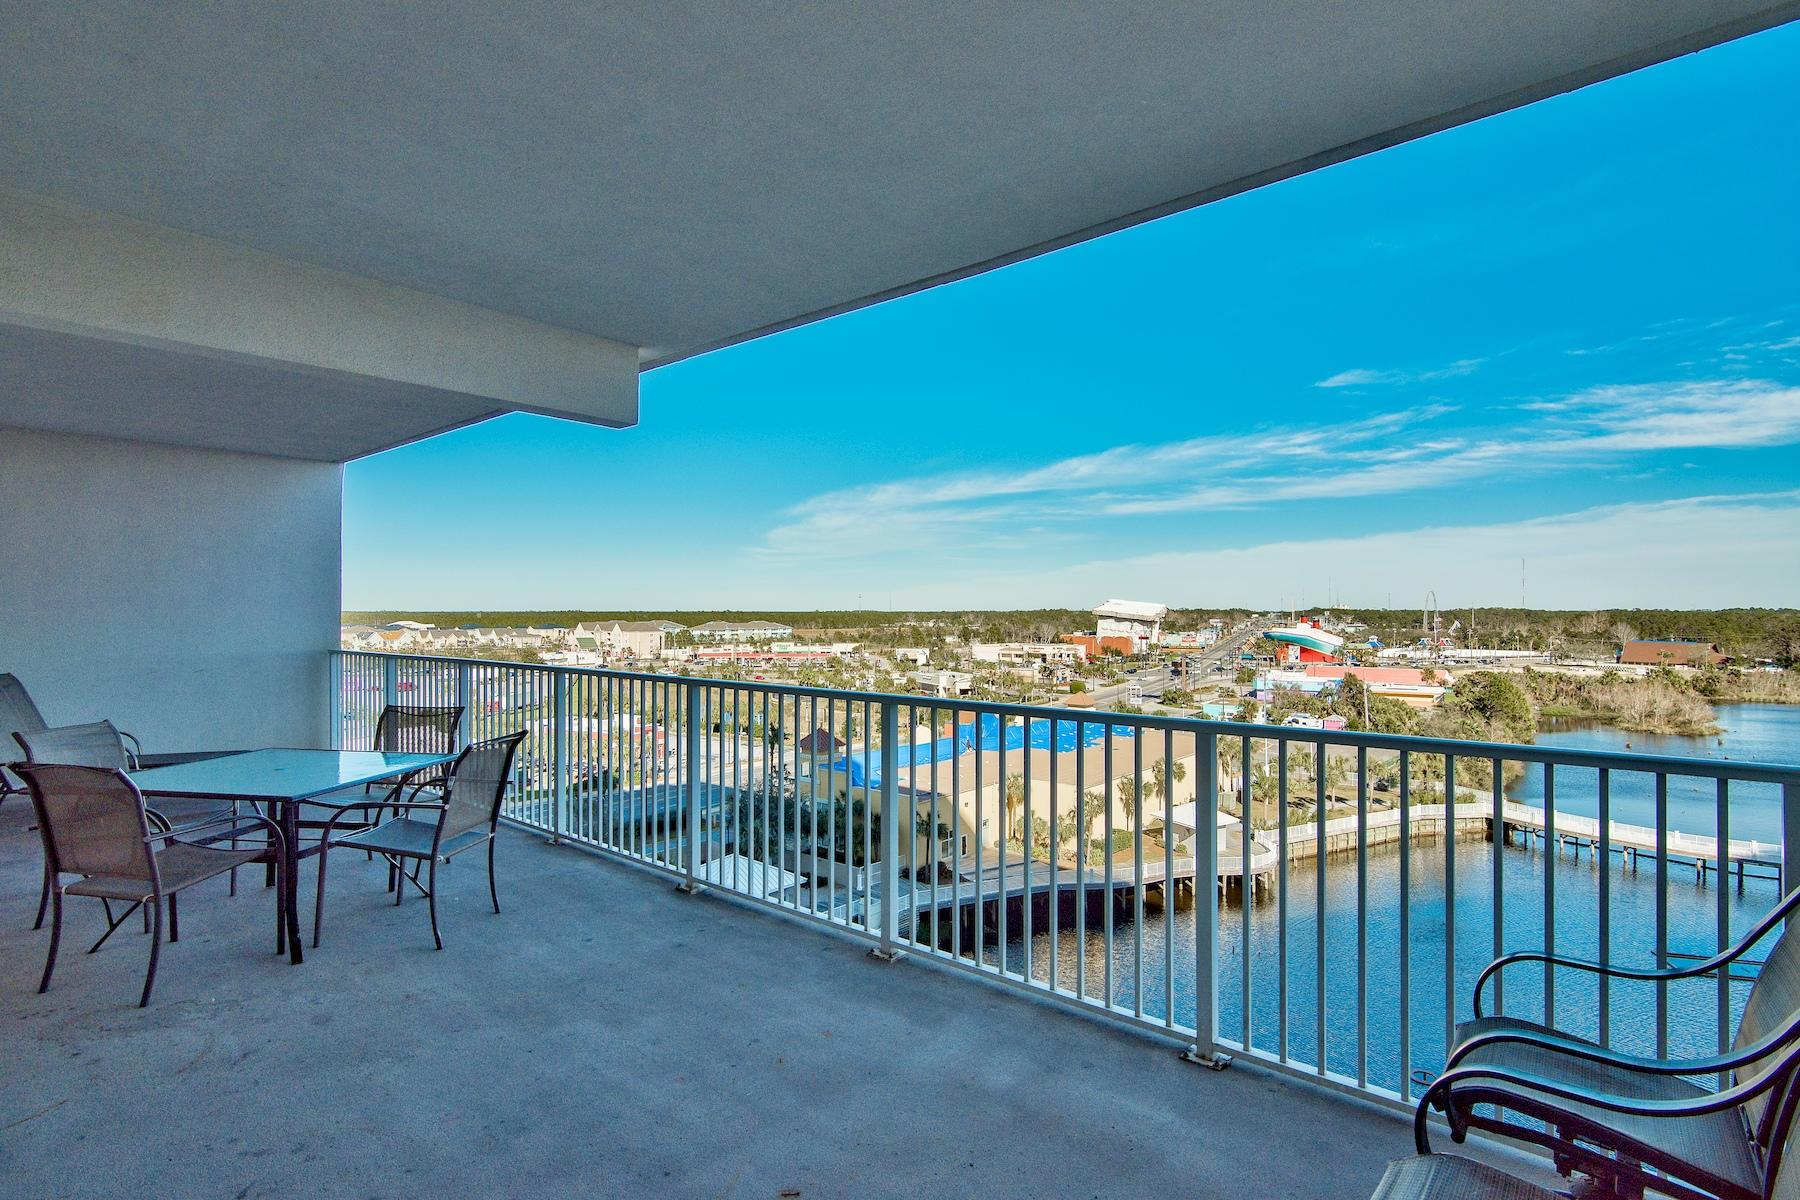 Lowest priced 3 Bedroom in Laketown Wharf! This fully furnished unit sits on the 7th Floor in an ideal location not too low and not to high up!  Laketown Wharf Resort is the complete package located in the heart of Panama City Beach.  The amenities make this place one of a kind and include the following: Convenient Beach Access, 5 Unique Pools, a Kids Funscape Playground, Splash Bar & Grill, Gulf View Fitness Center & Covered Garage Parking and more.  Enjoy the nightly Fountain & Light Show & Market Shops along the 52,000 square feet of Lakefront Boardwalk.  This unit is priced to move and financing is available with only 10% down with certain lenders today(subject to credit approval)!  Call for more information.